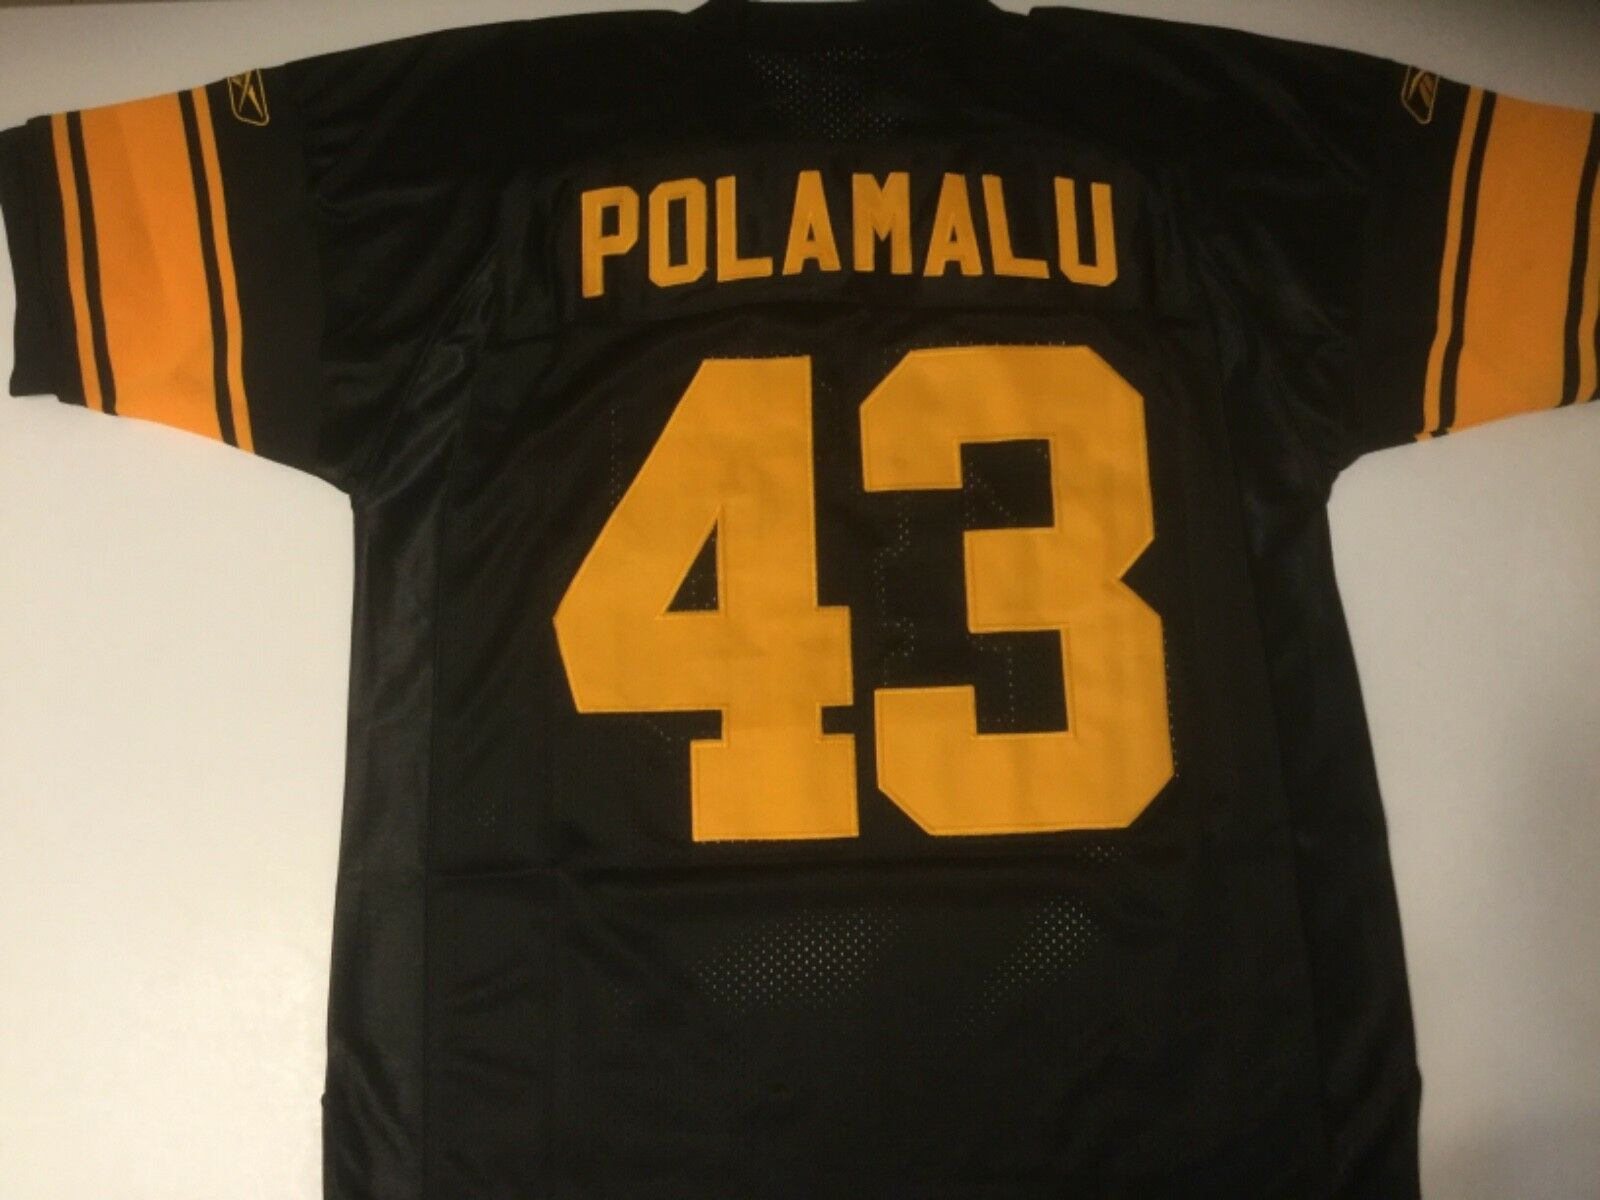 Maillot sport NFL - Pittsburgh Steelers, Polamalu - comme neuf (Taille M)